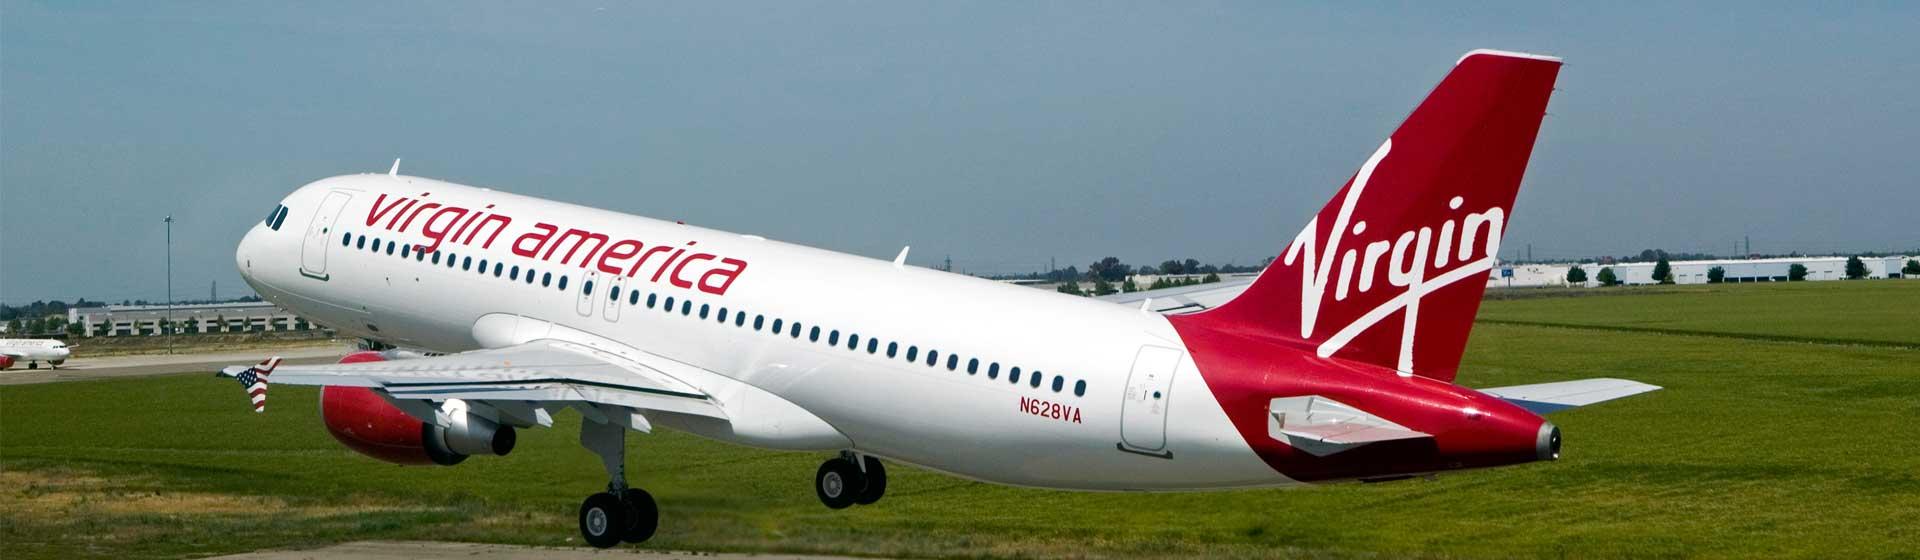 Virgin America Airlines Plane taking off